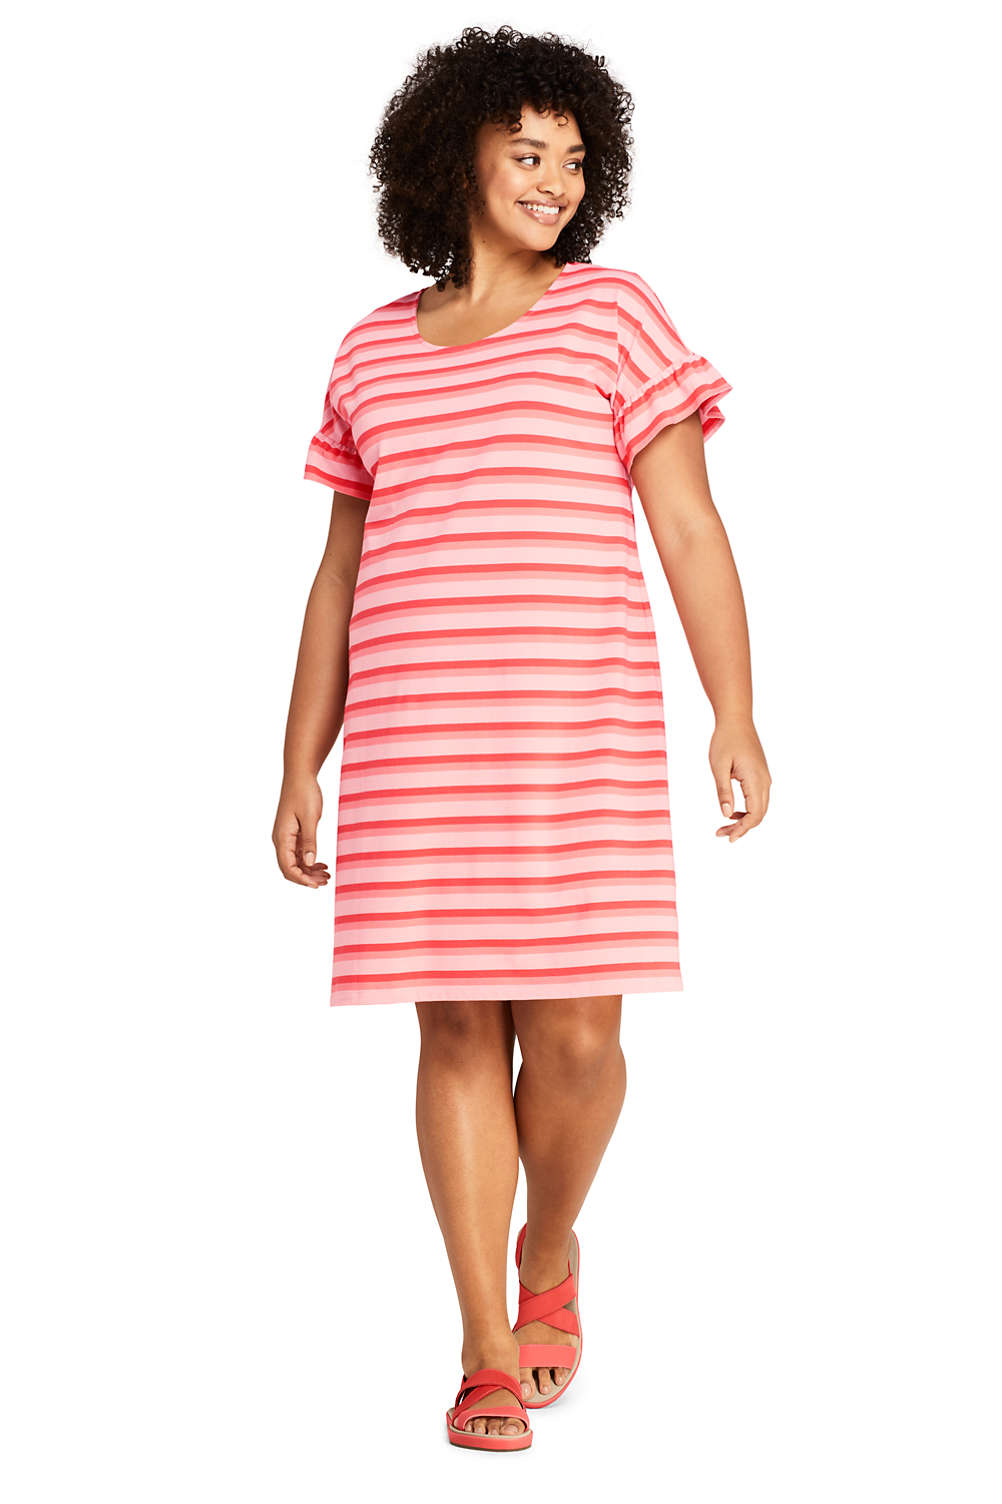 Women\'s Plus Size Short Sleeve Ruffle Knit Stripe Tee Shirt Dress